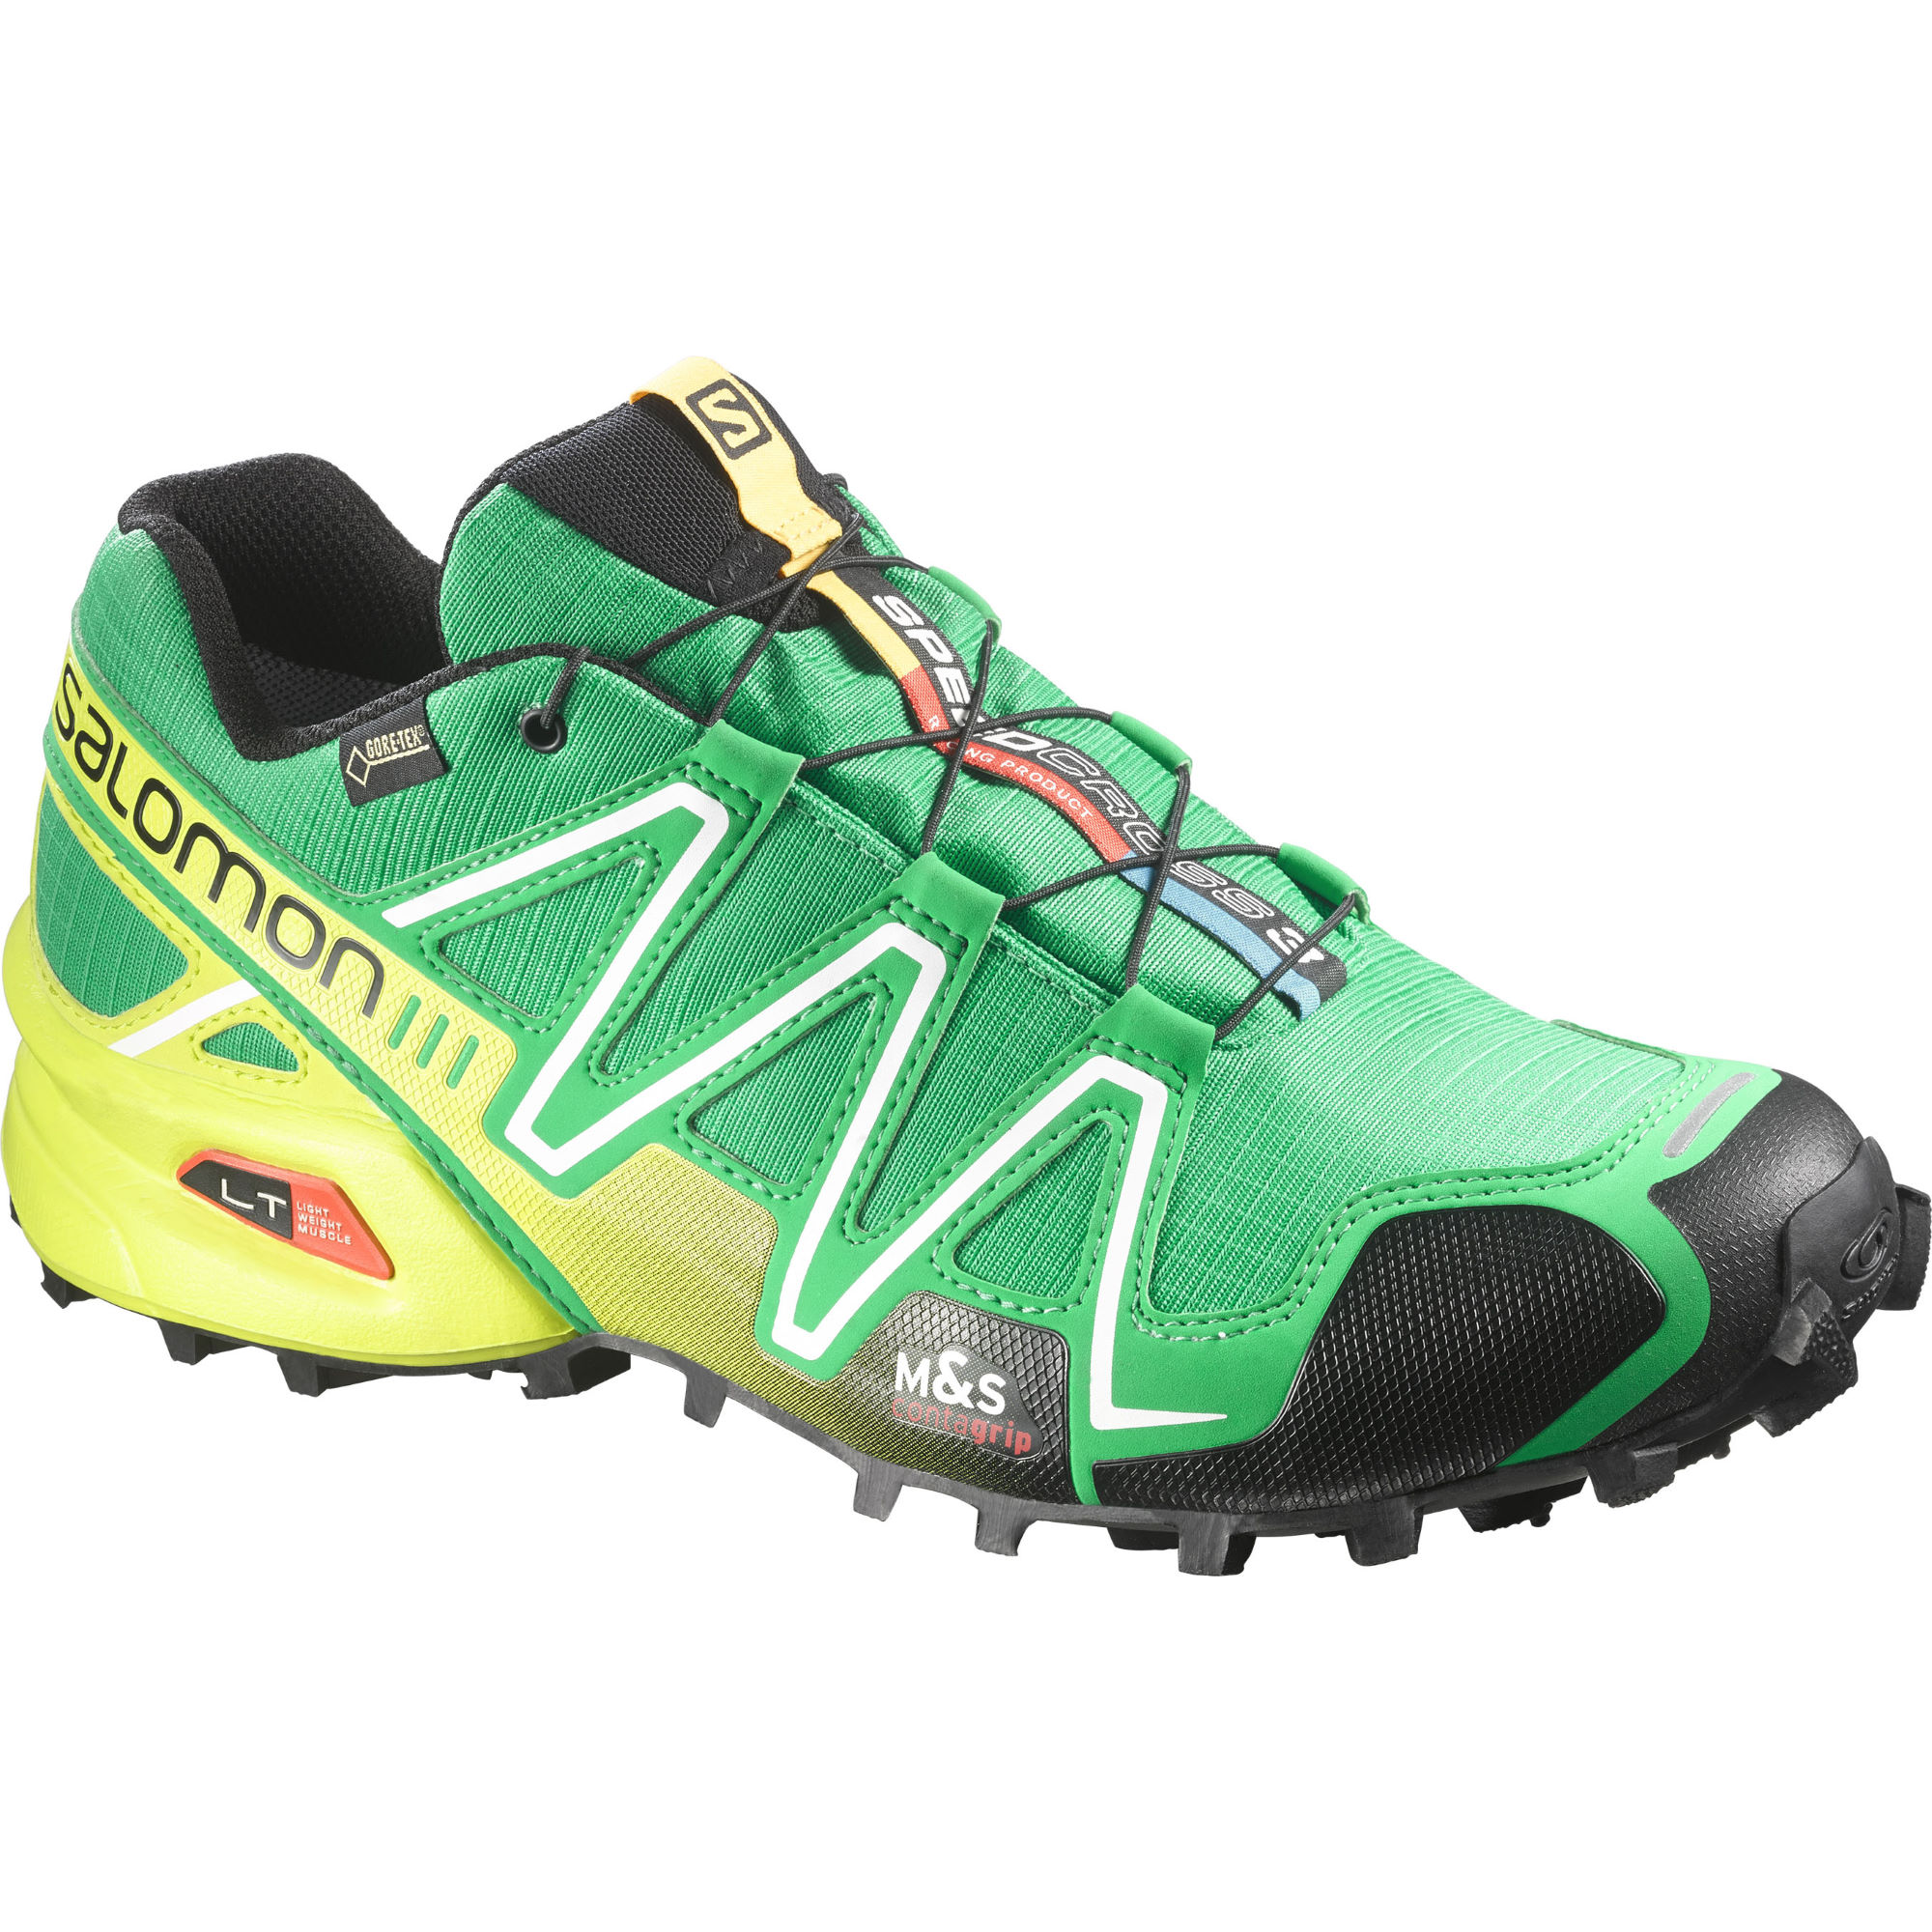 wiggle salomon speedcross 3 gtx shoes ss16 offroad running shoes. Black Bedroom Furniture Sets. Home Design Ideas